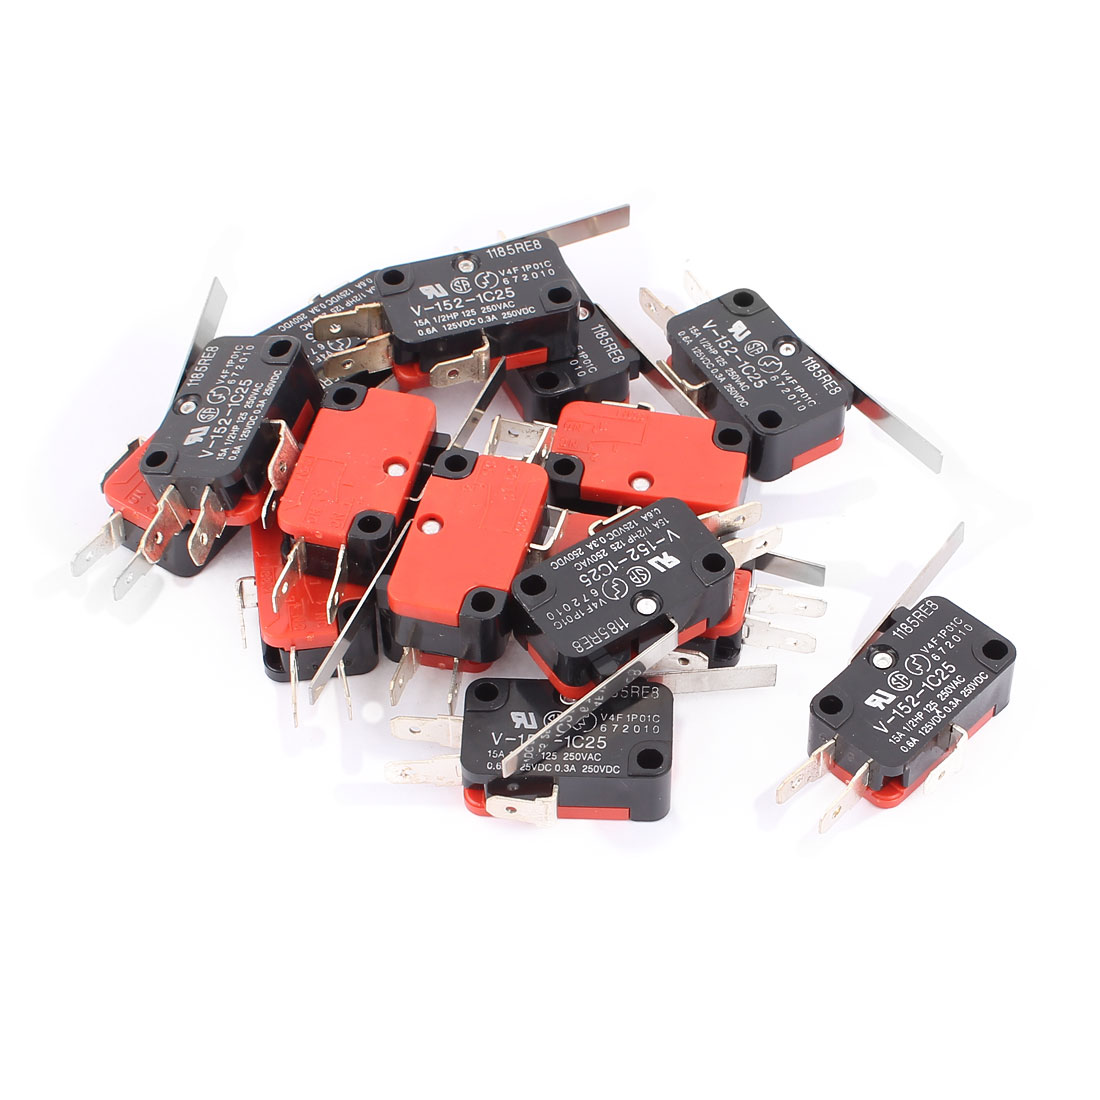 15 Pcs V-152-1C25 Straight Lever Momentary Micro Switch SPDT 2 Point ON/OFF